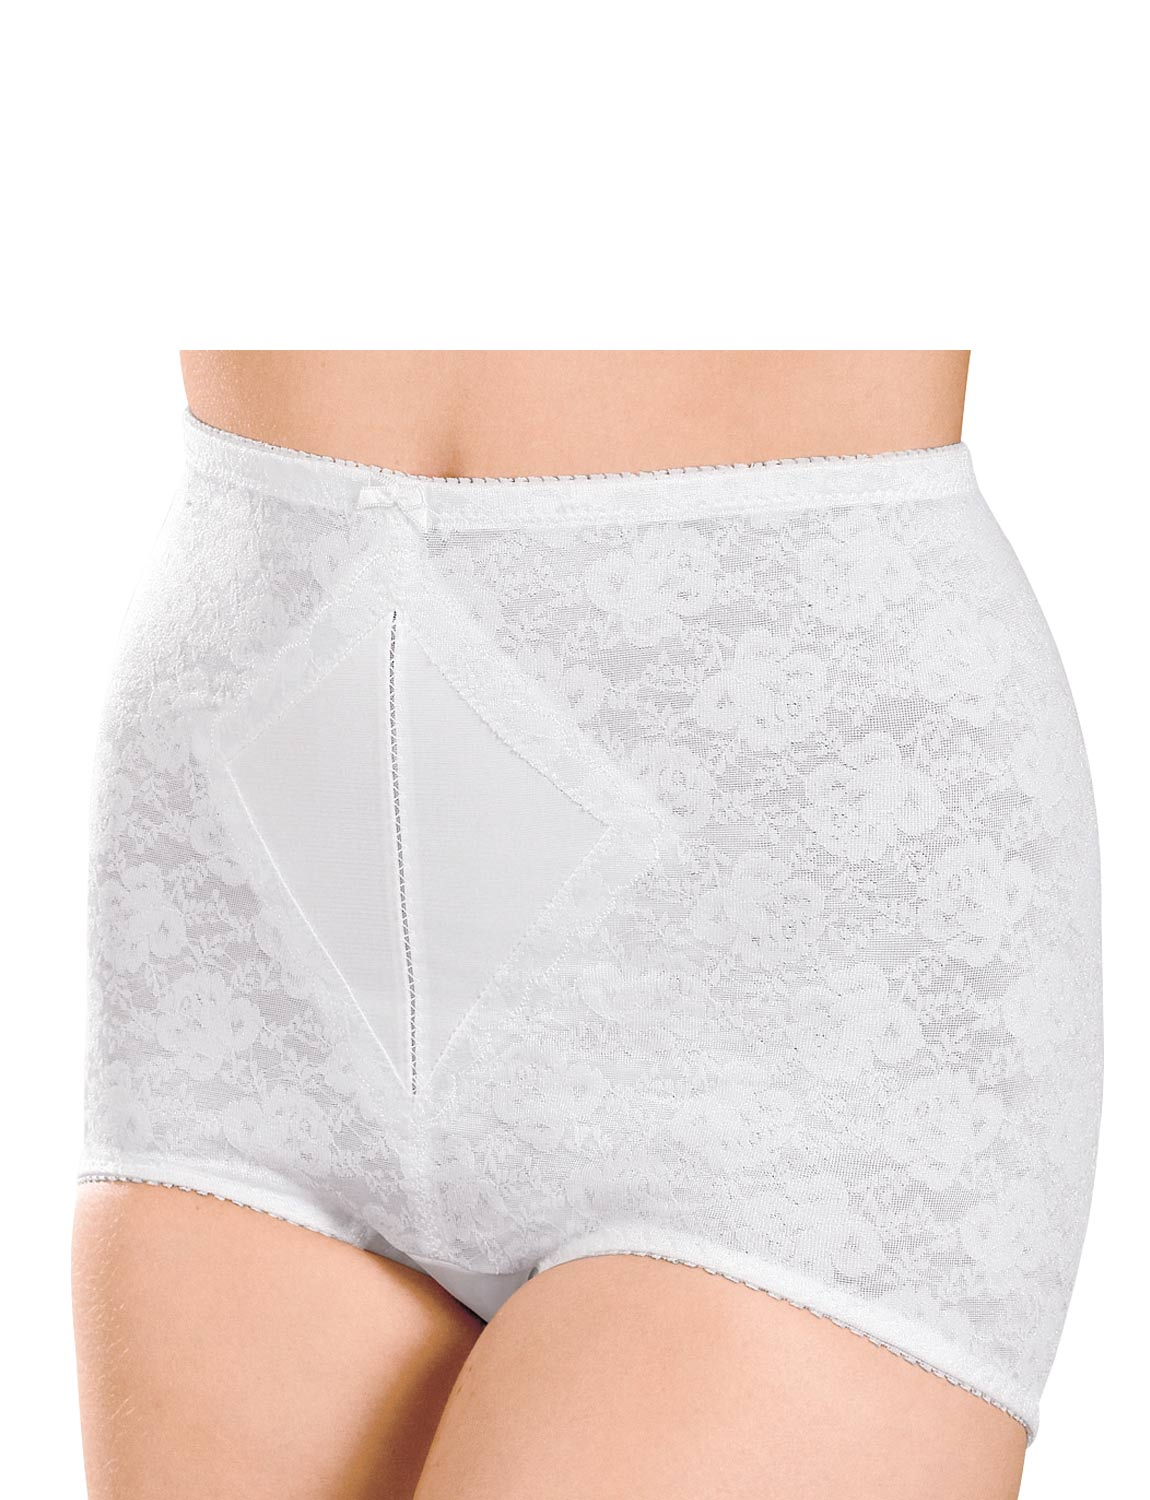 7615006669 Image is loading Naturana-Firm-Control-Panty-Girdle